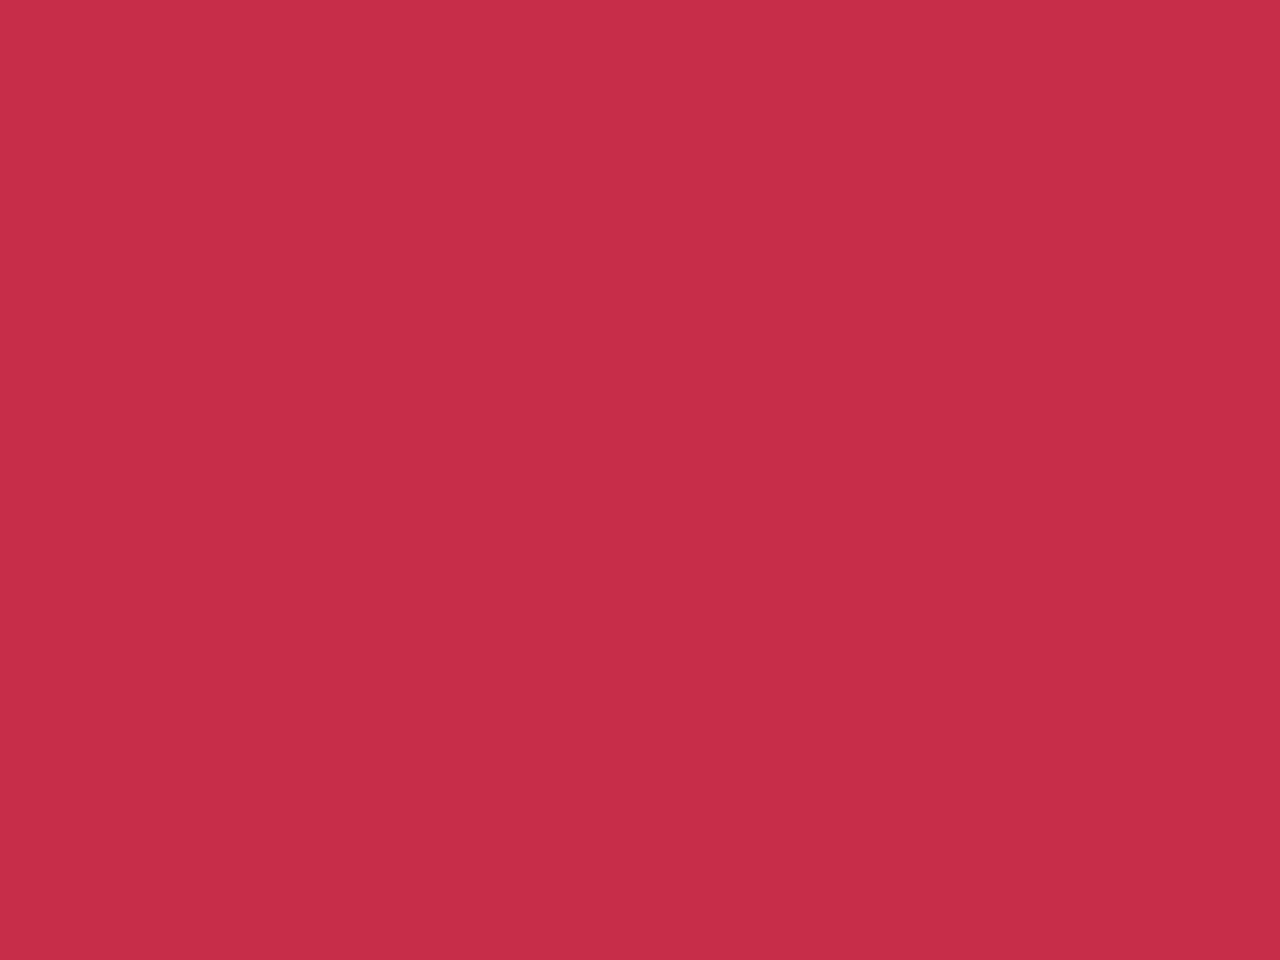 1280x960 French Raspberry Solid Color Background